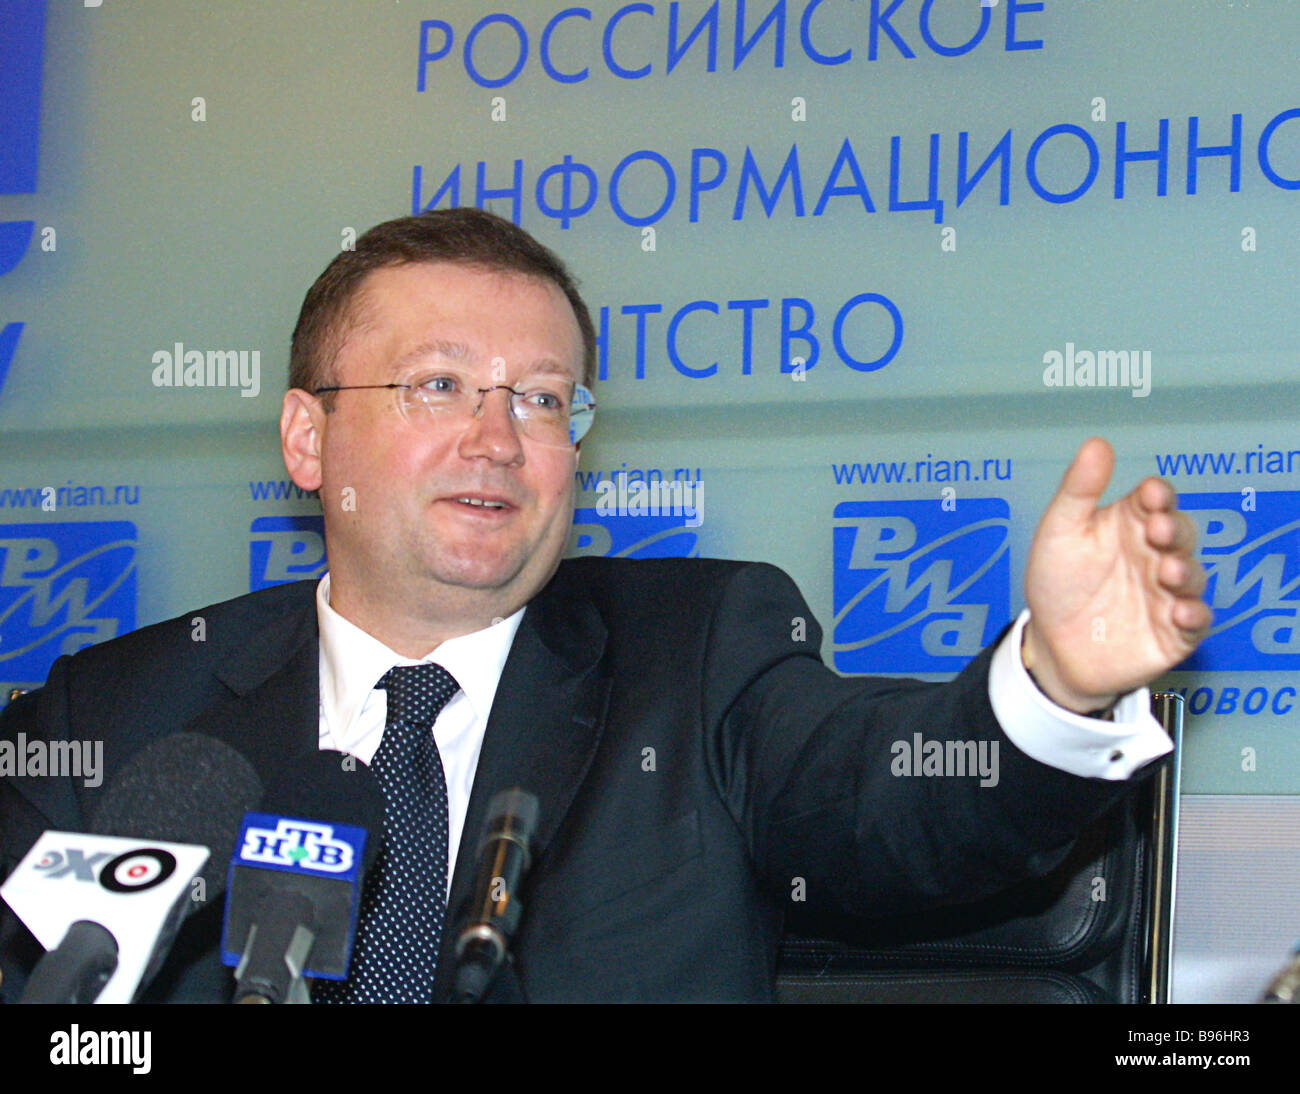 Alexander Yakovenko Spokesman for the Russian Foreign Ministry and Director of its Information and Press department - Stock Image